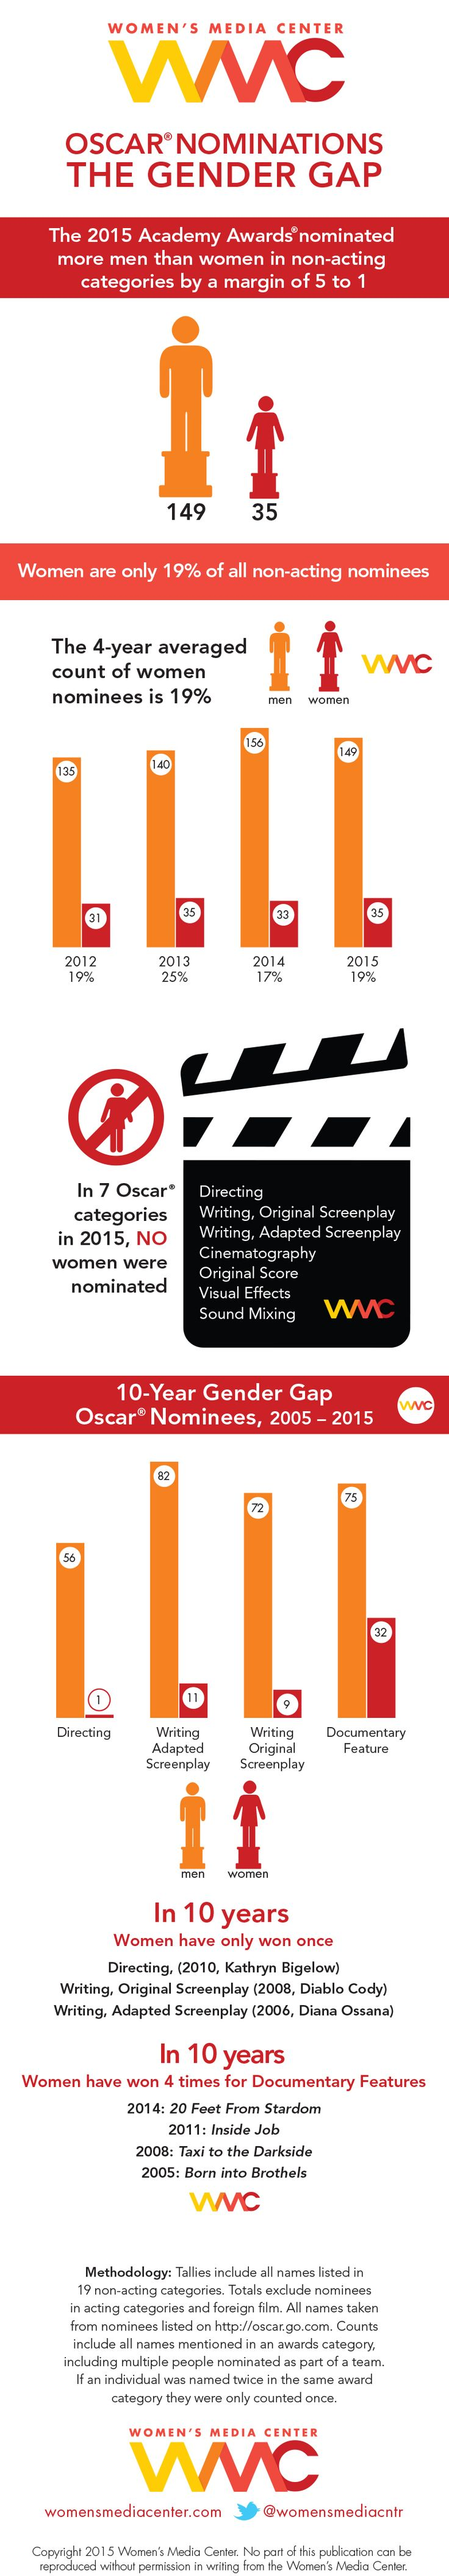 2015 Academy Award Nominees Lack Diversity [Infographic]